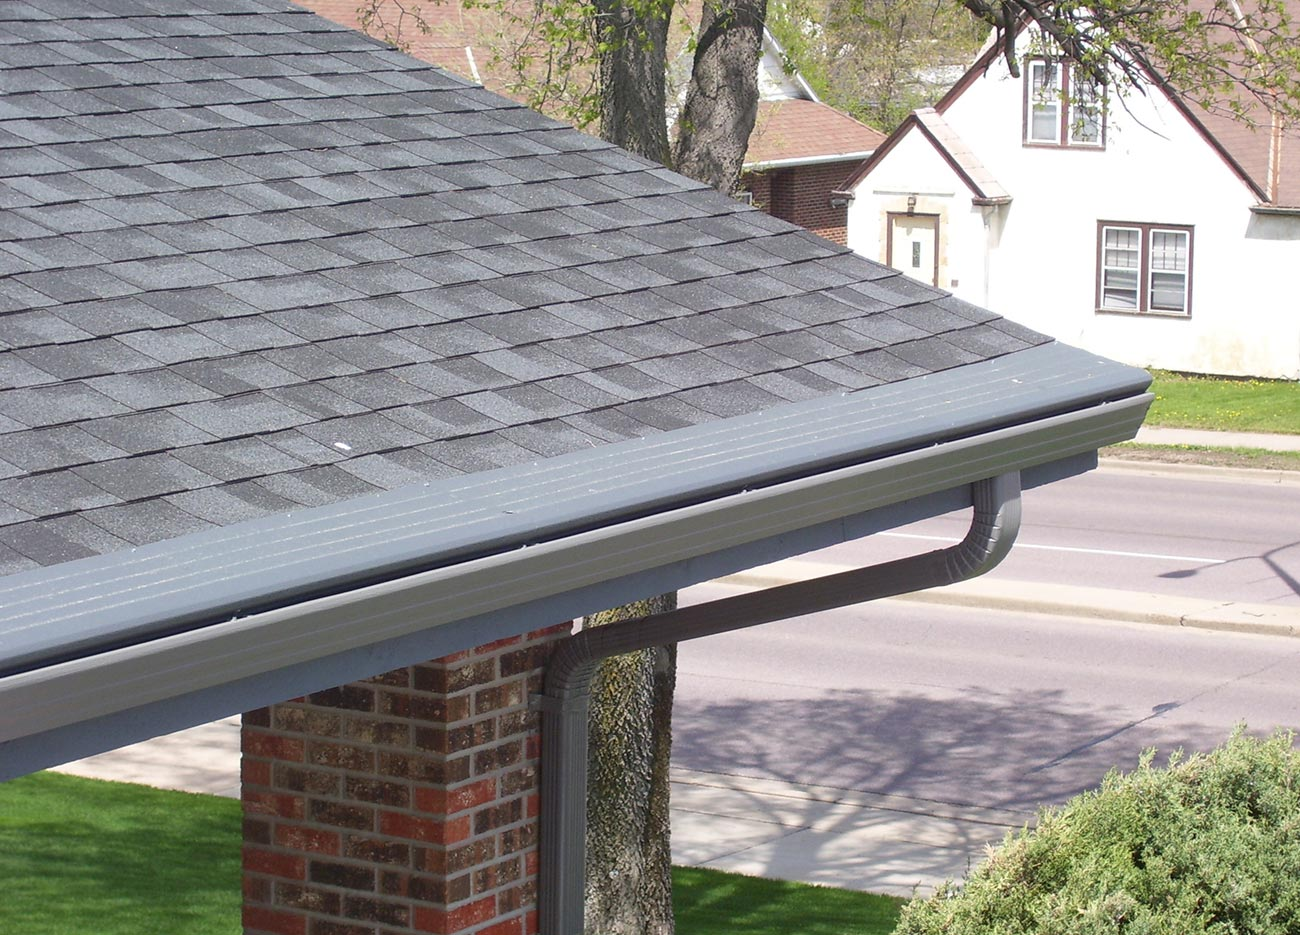 Top Features You Should Consider When Buying Quality Gutter Guards